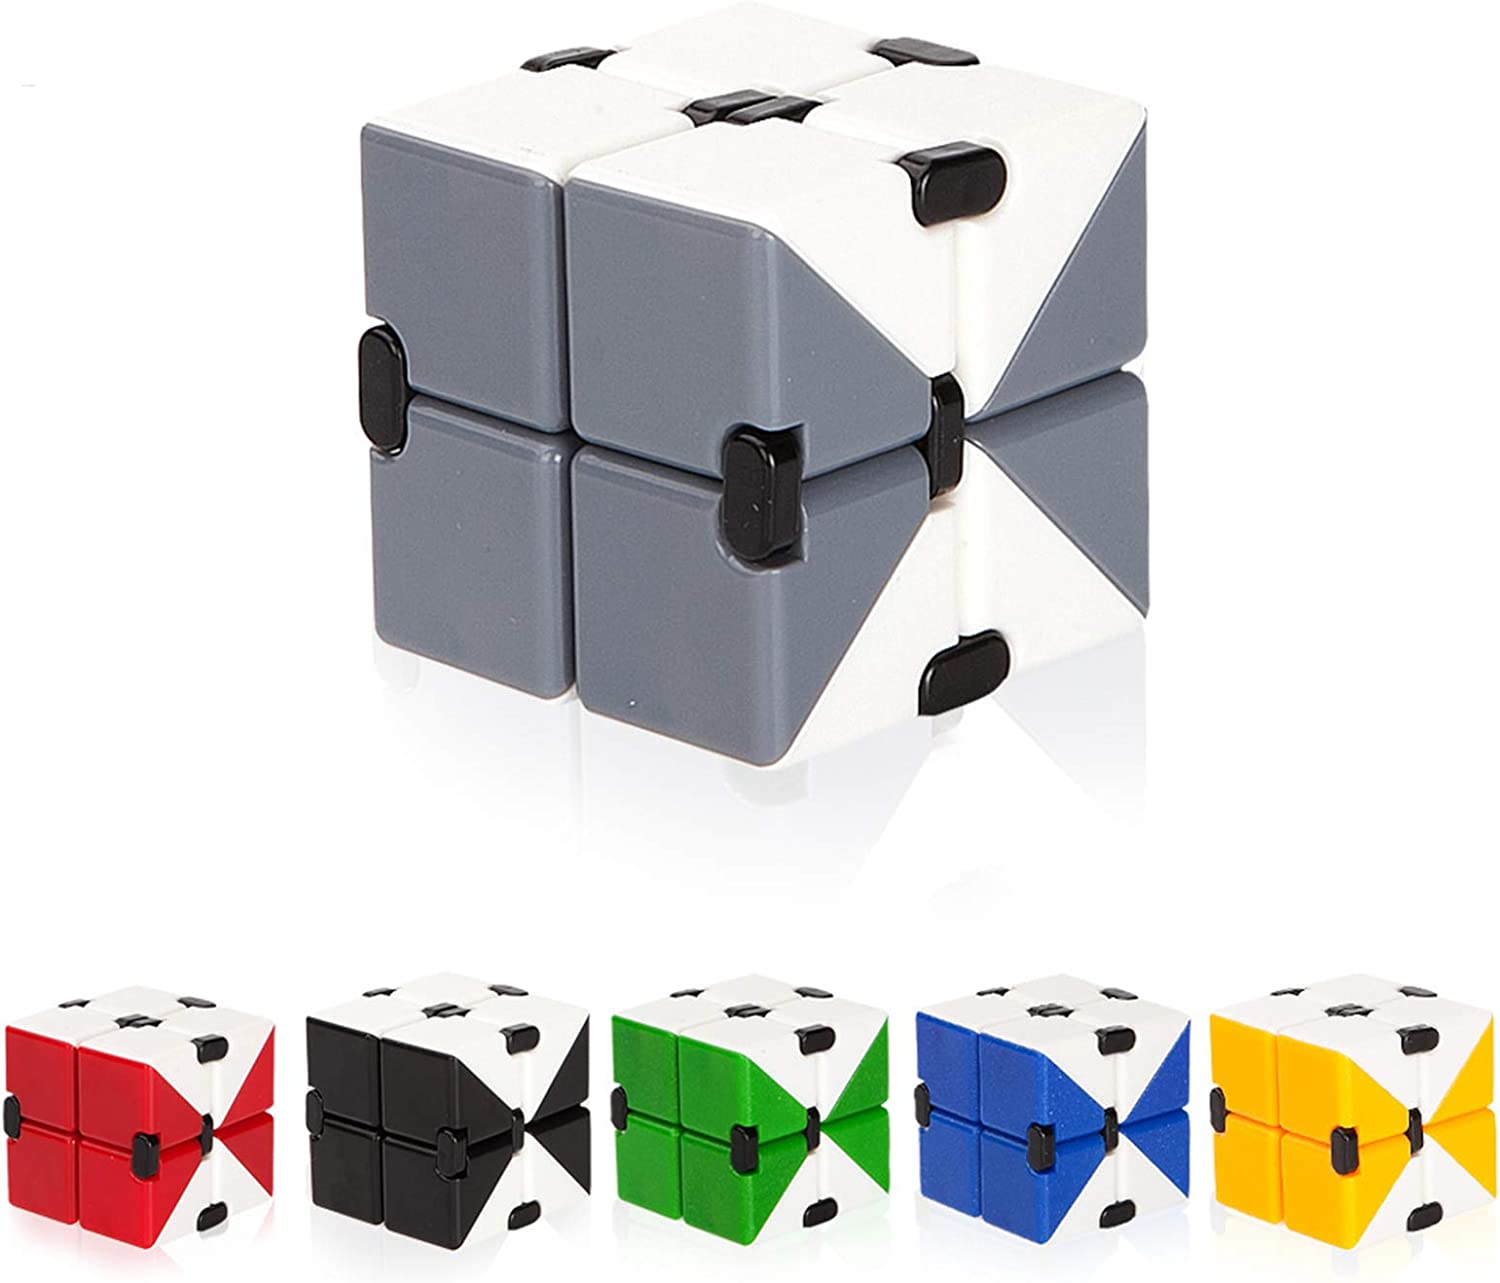 Stress Relieving Fidgeting Game for Kids and Adults Mini Magic Toys Unique Gadget for Anxiety Relief and Relax Time TEEMOON Infinity Cube Fidget Toy Pink